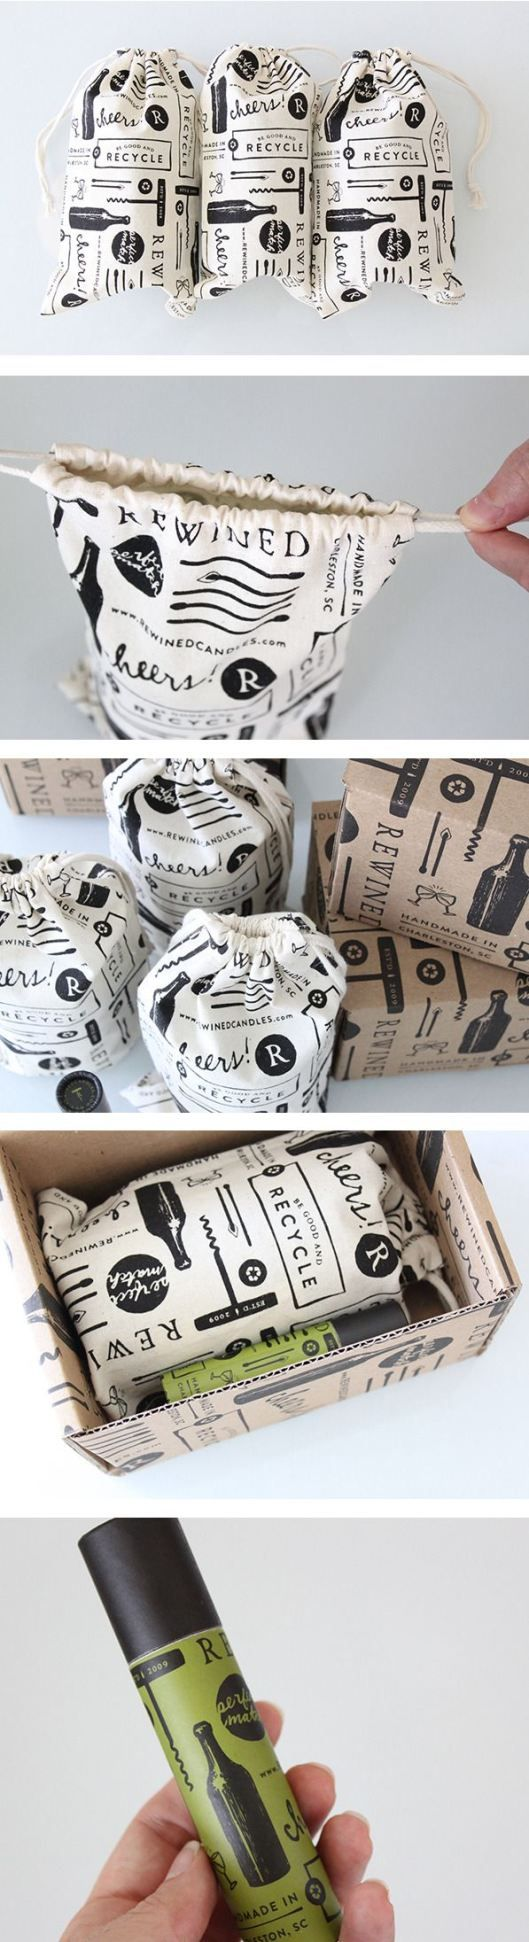 Rewined - beautiful soy candles in repurposed wine bottles in wine scents with beautiful packaging